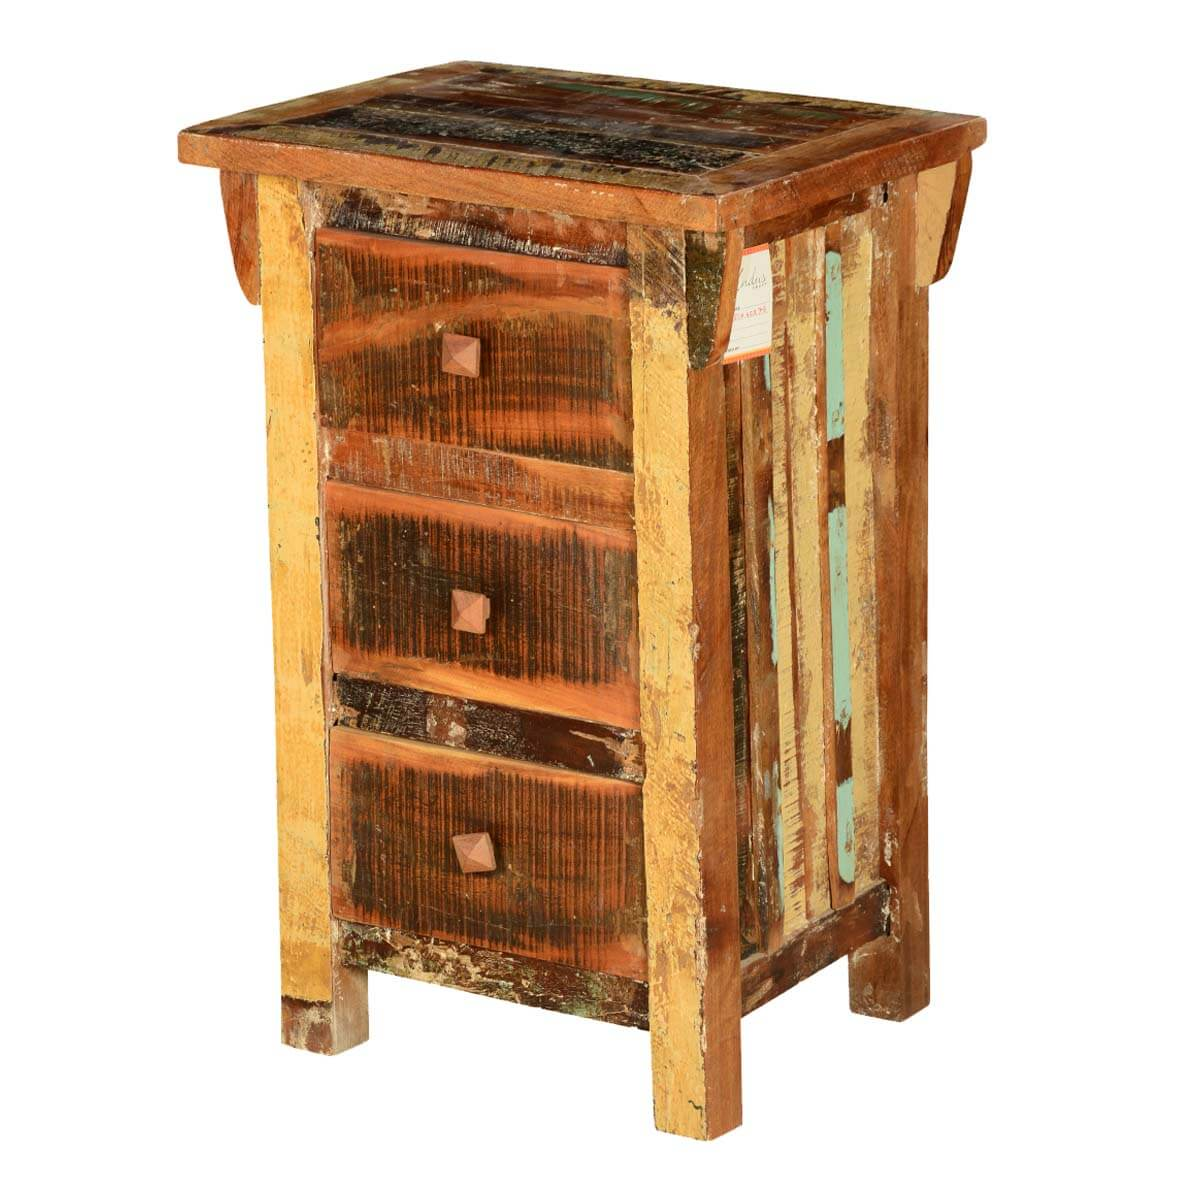 Rustic pioneer reclaimed wood 3 drawer nightstand end table for Rustic wood accent tables